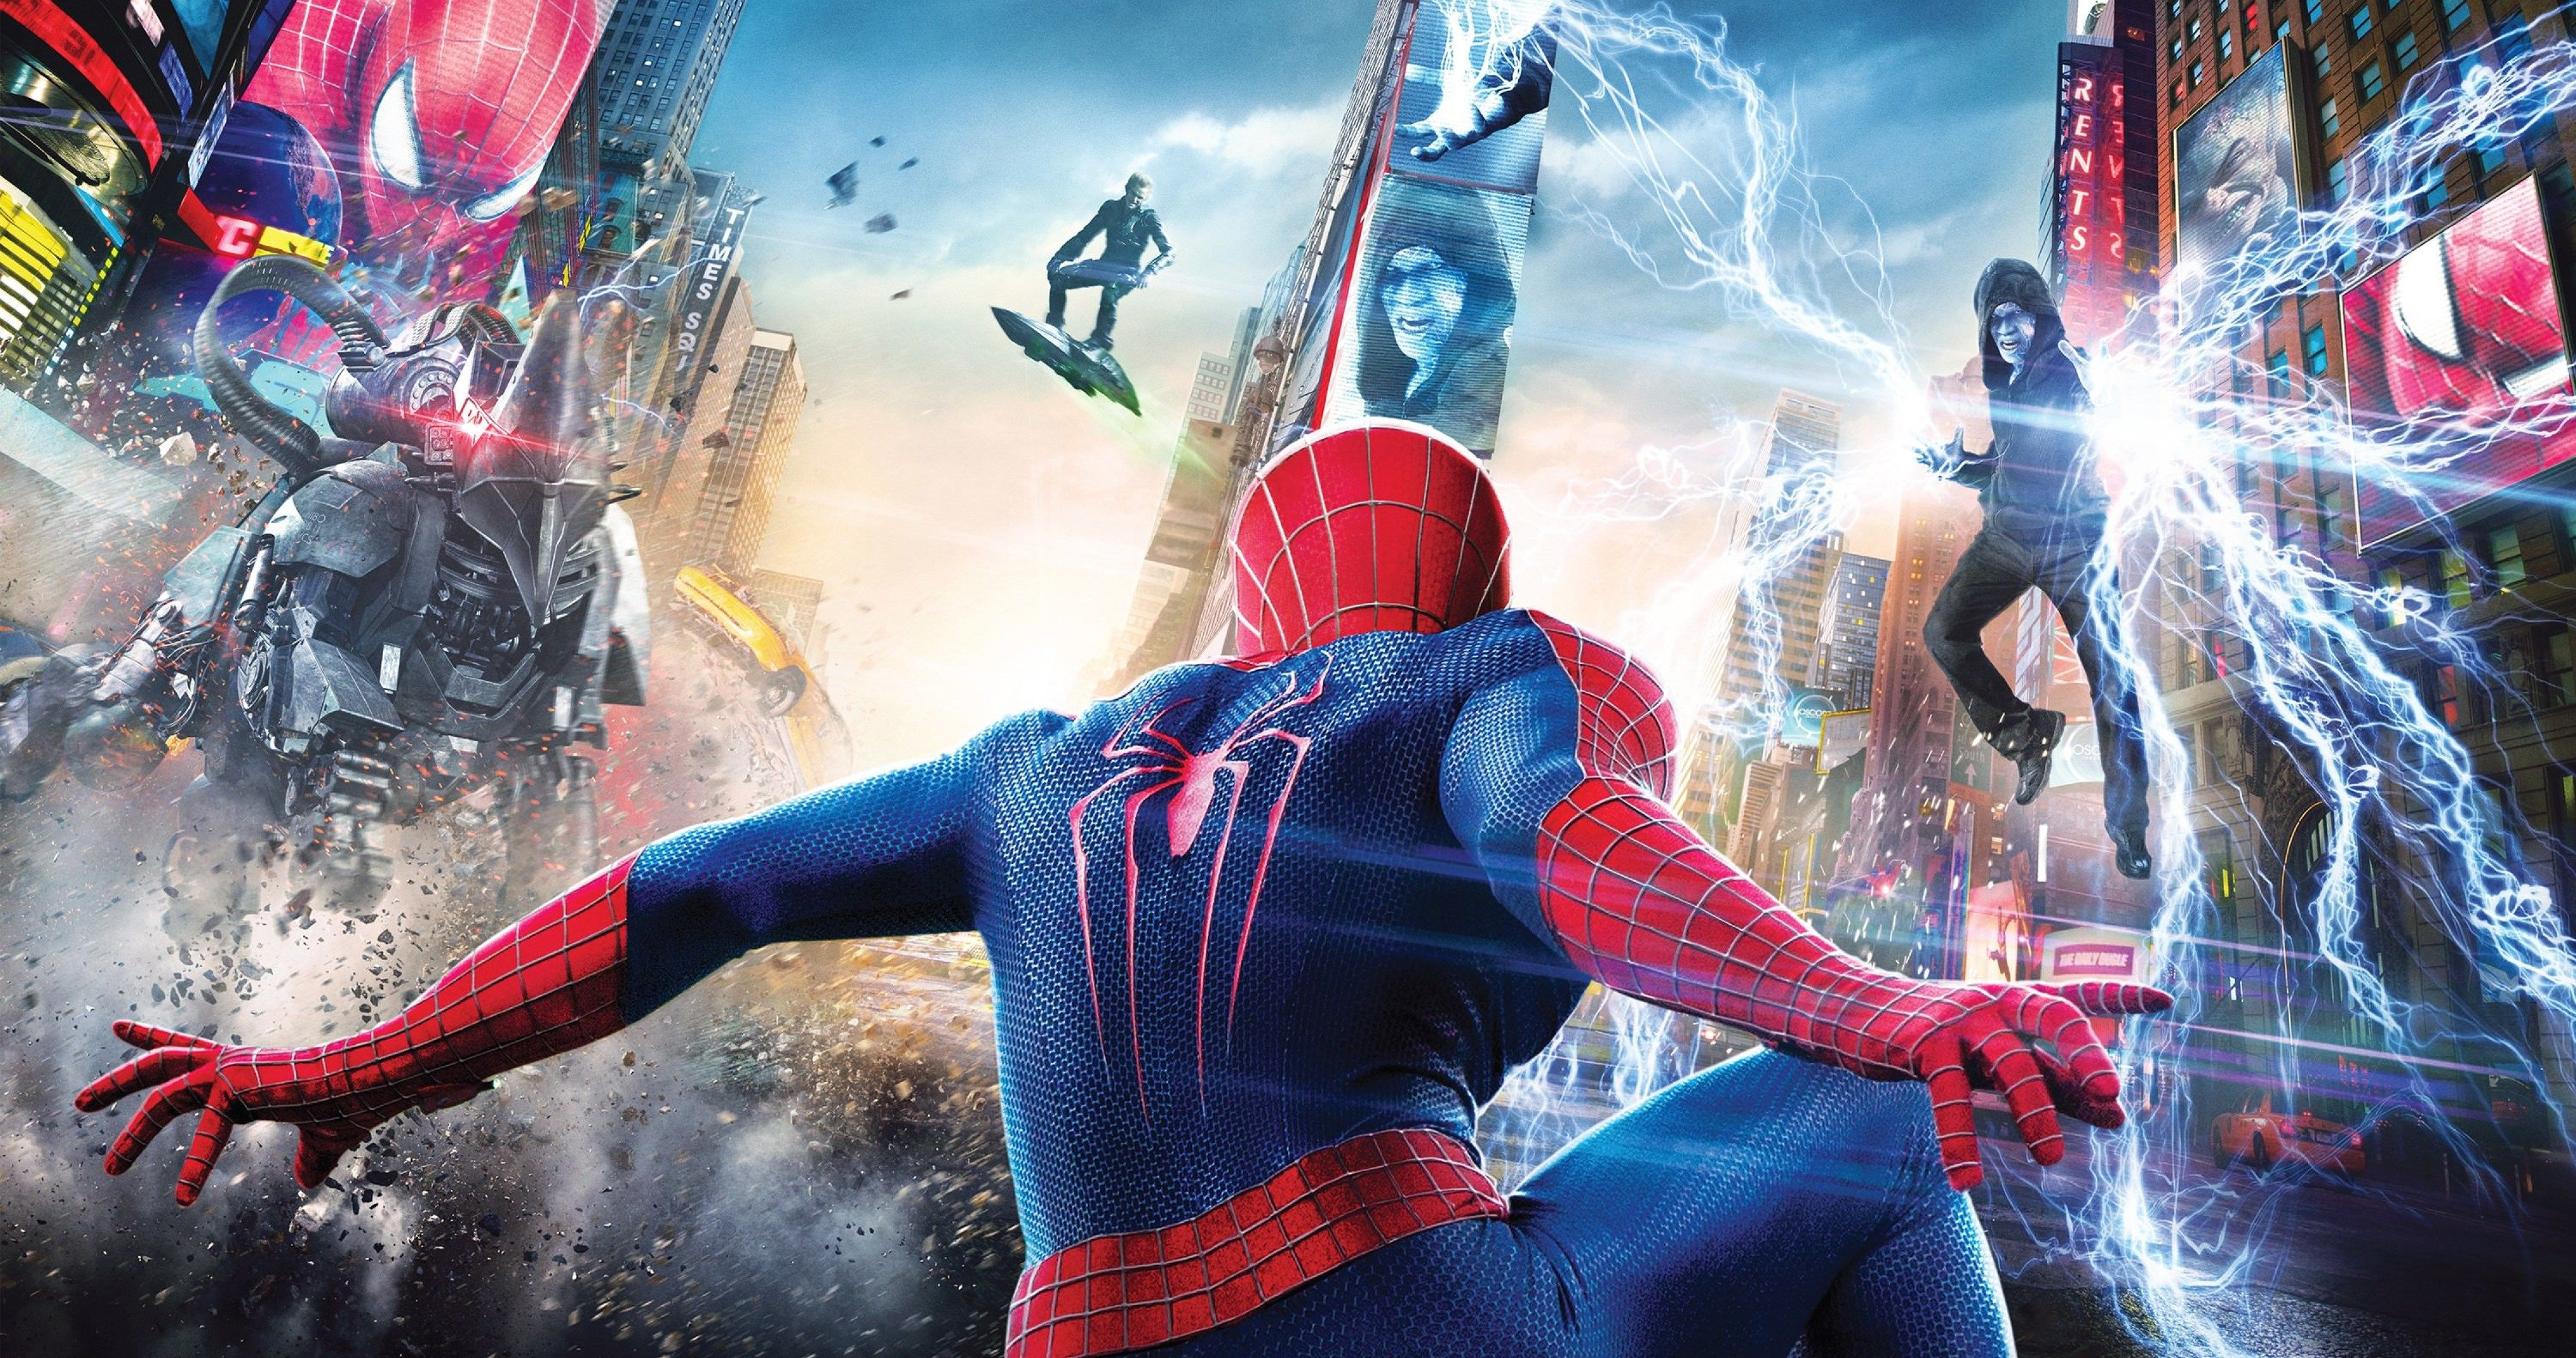 Exclusive The Amazing Spider Man 2 4k Ultra Hd Wallpaper Spiderman Amazing Spiderman The Amazing Spiderman 2